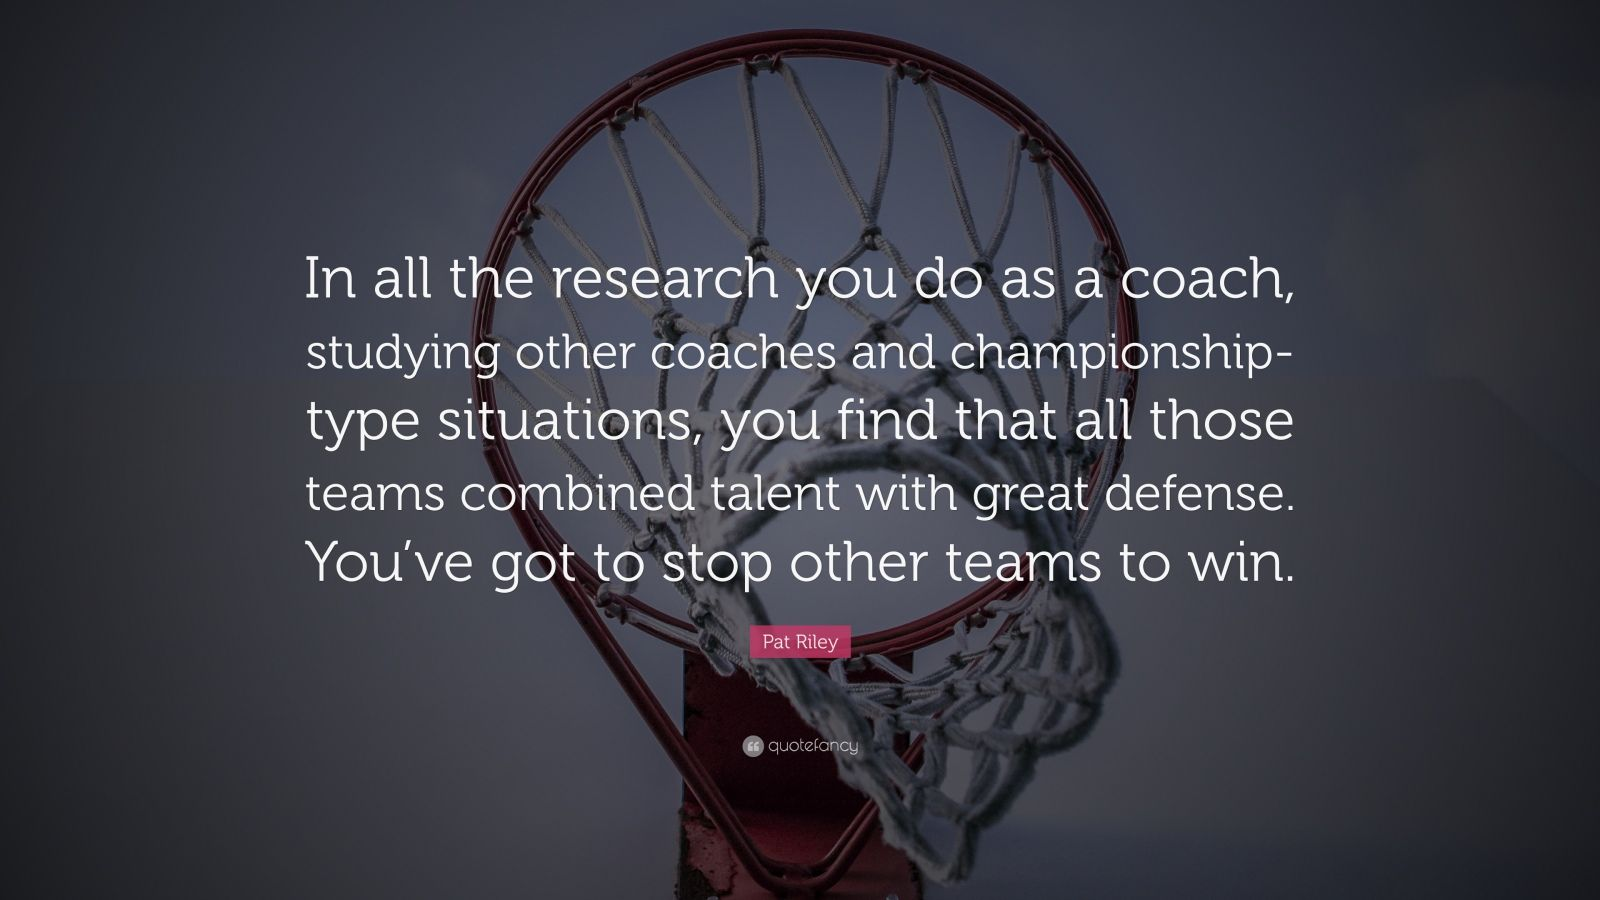 """Pat Riley Quote: """"In all the research you do as a coach, studying other coaches and championship-type situations, you find that all those teams combined talent with great defense. You've got to stop other teams to win."""""""